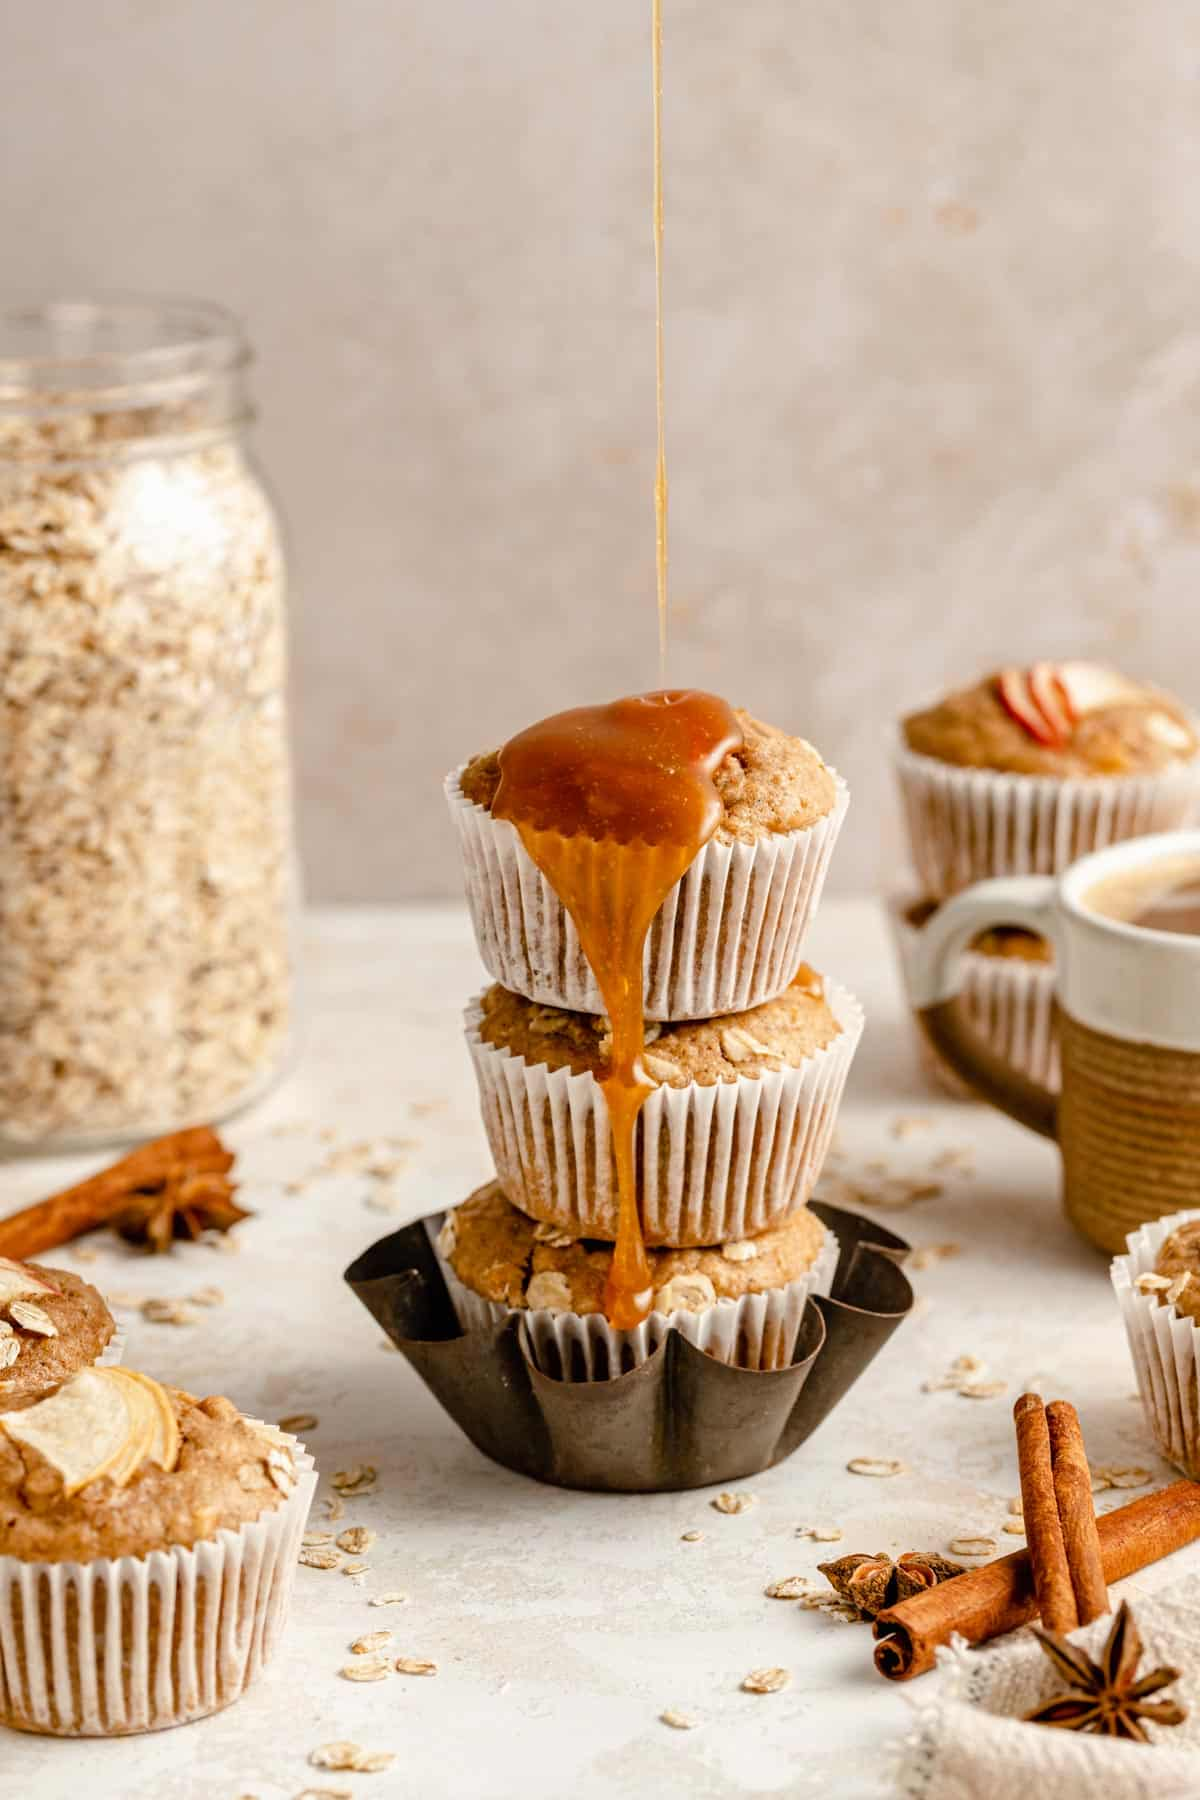 Stack of apple oatmeal muffins with caramel being poured over the top